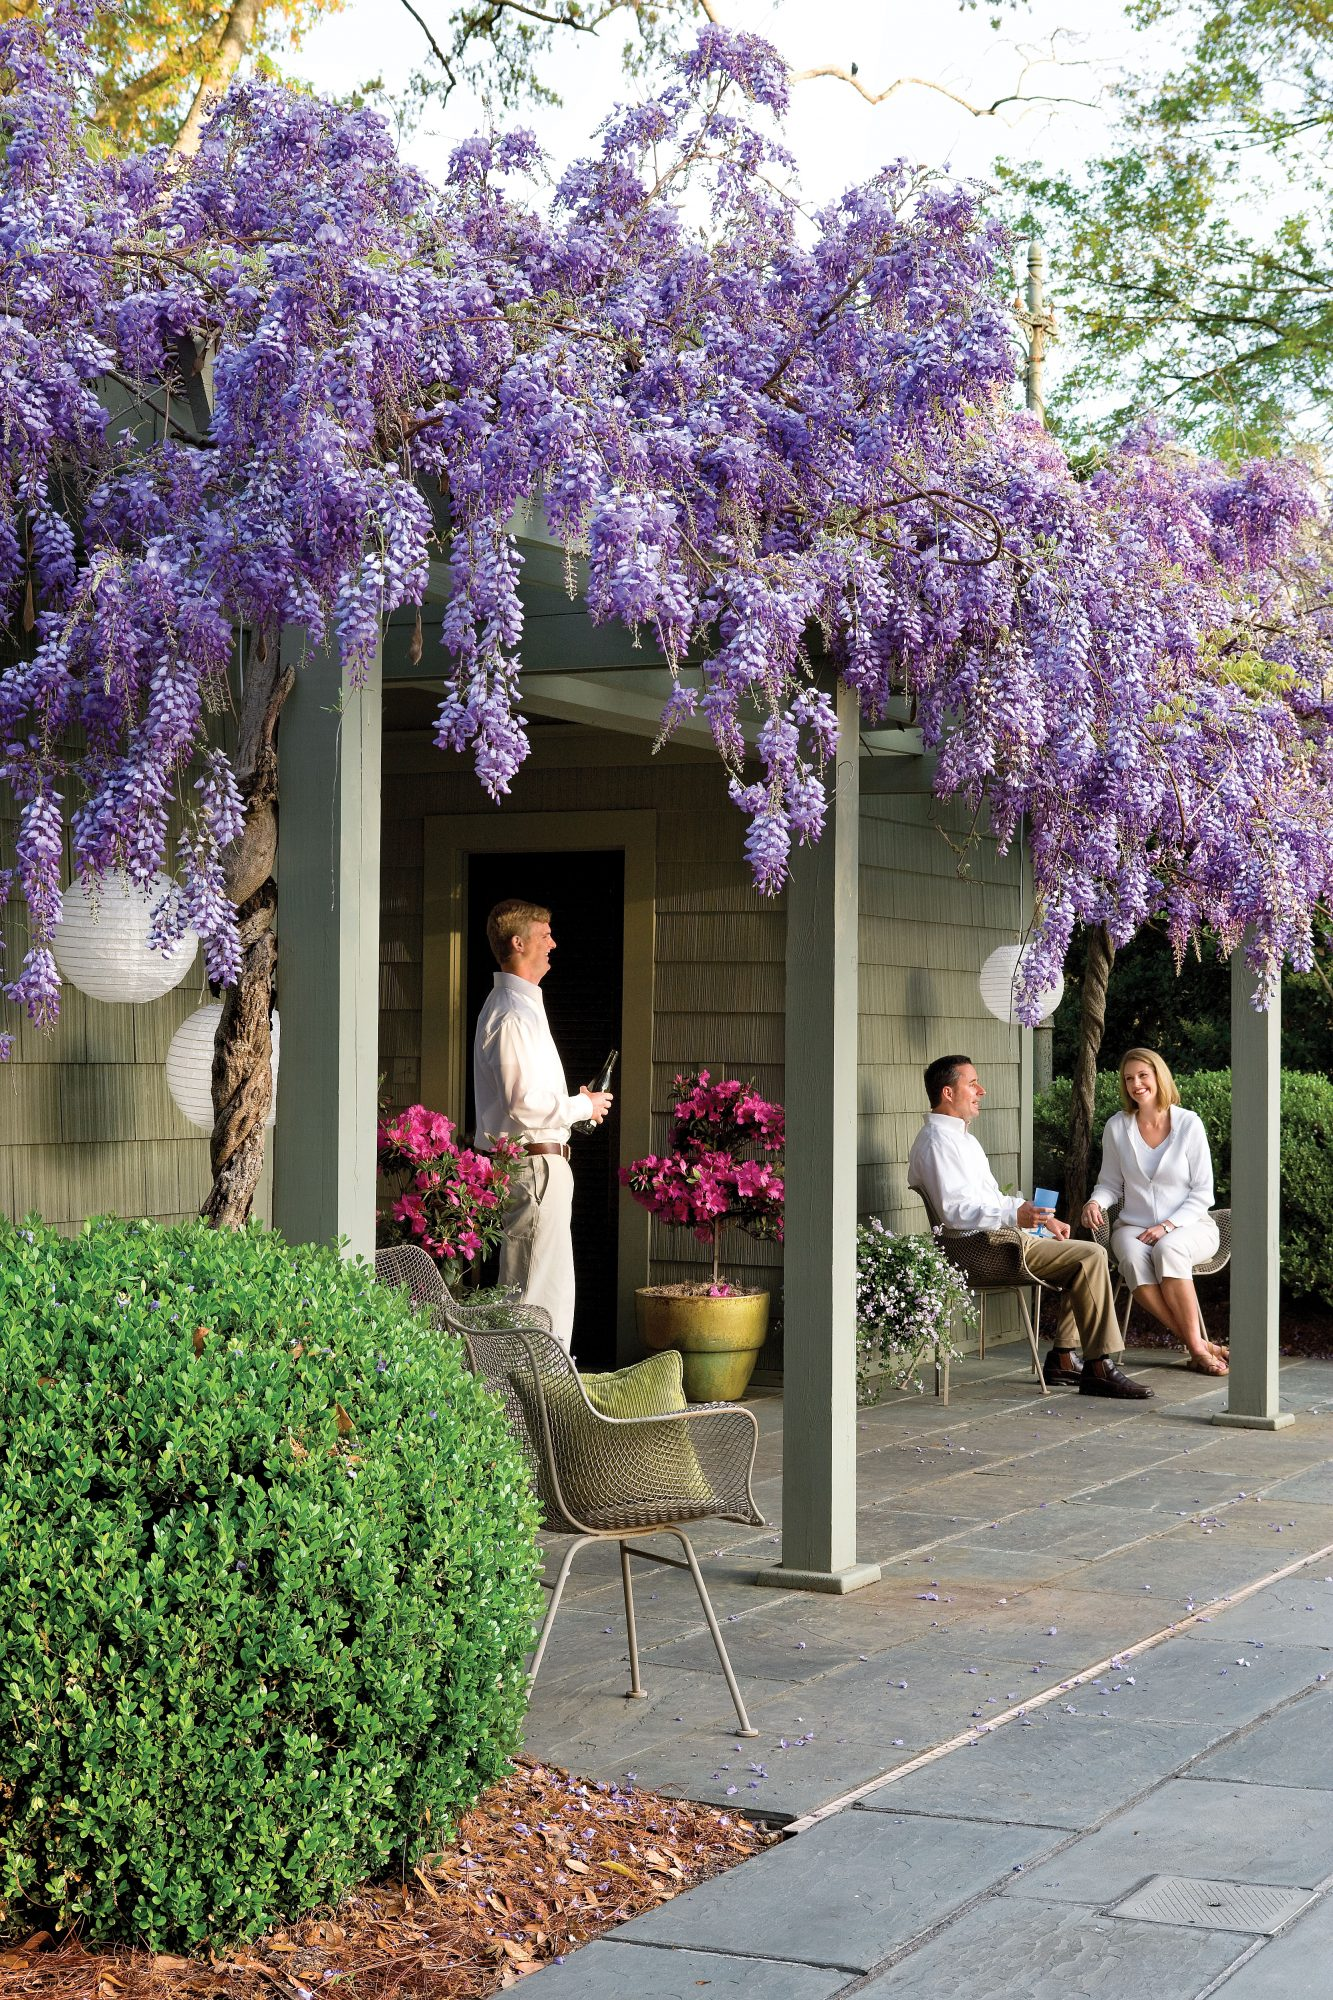 Beautiful Purple Wisteria Flowers With Fragrant Blooms